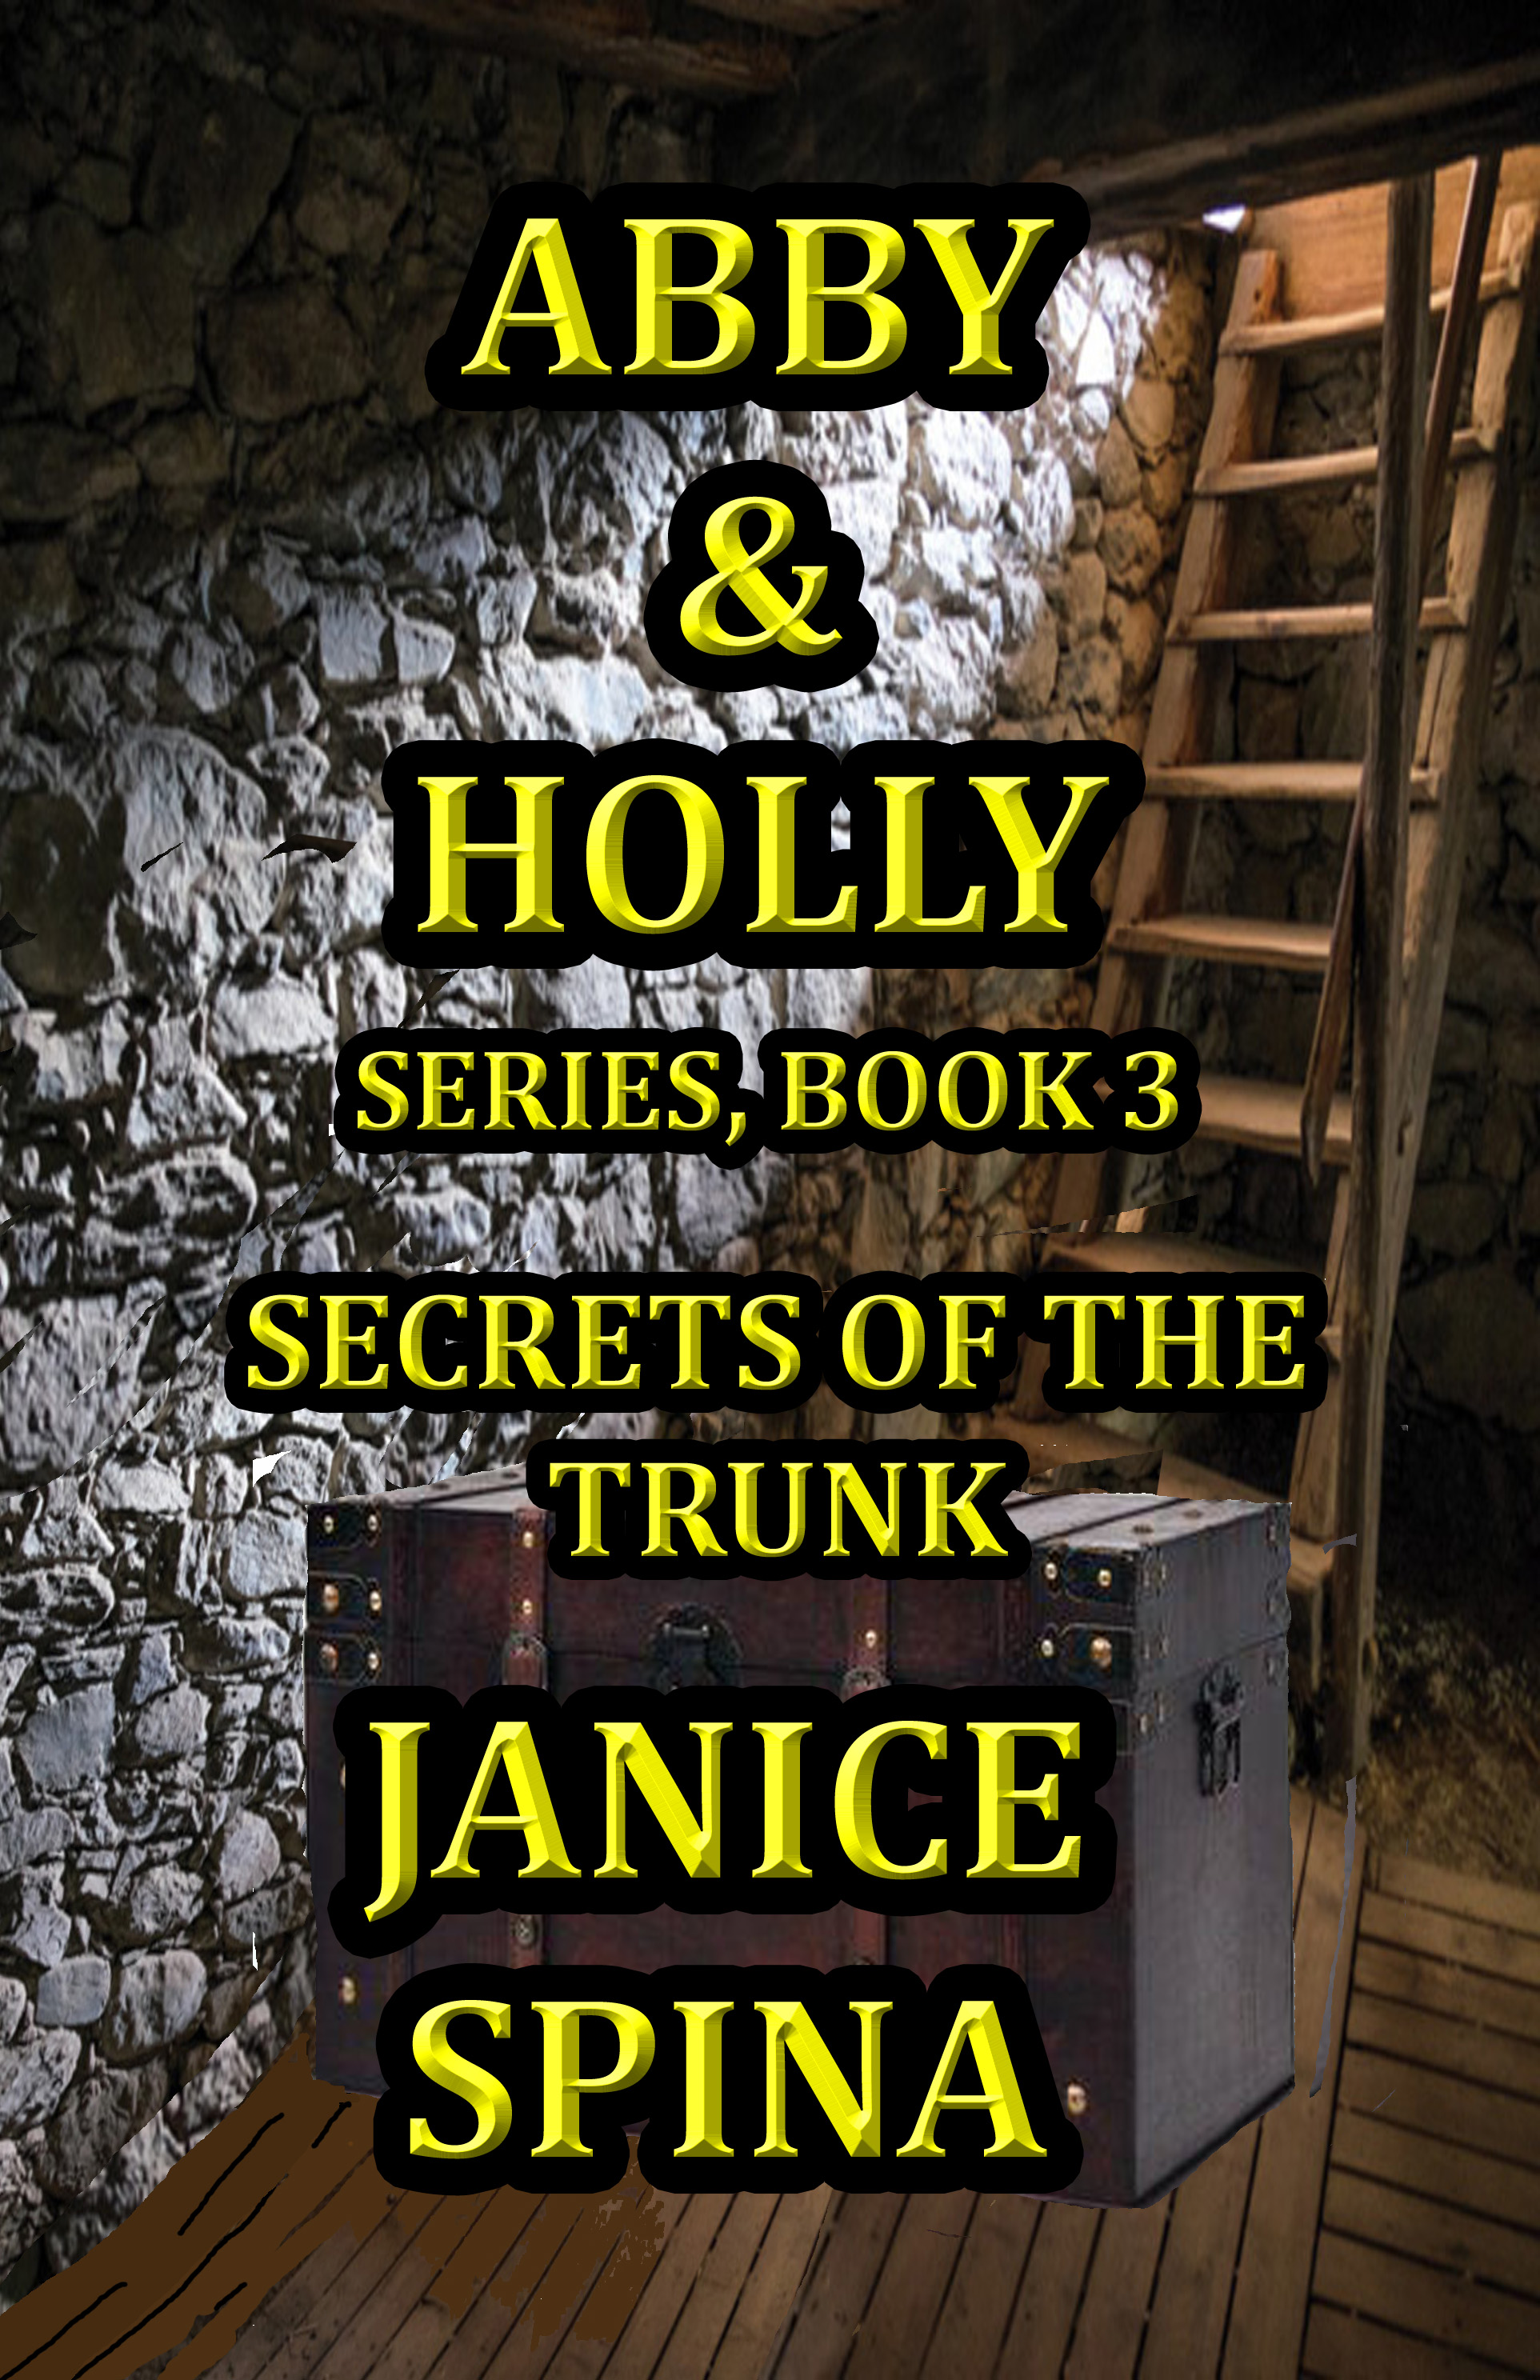 Purchase Link to Abby & Holly Series, Book 3